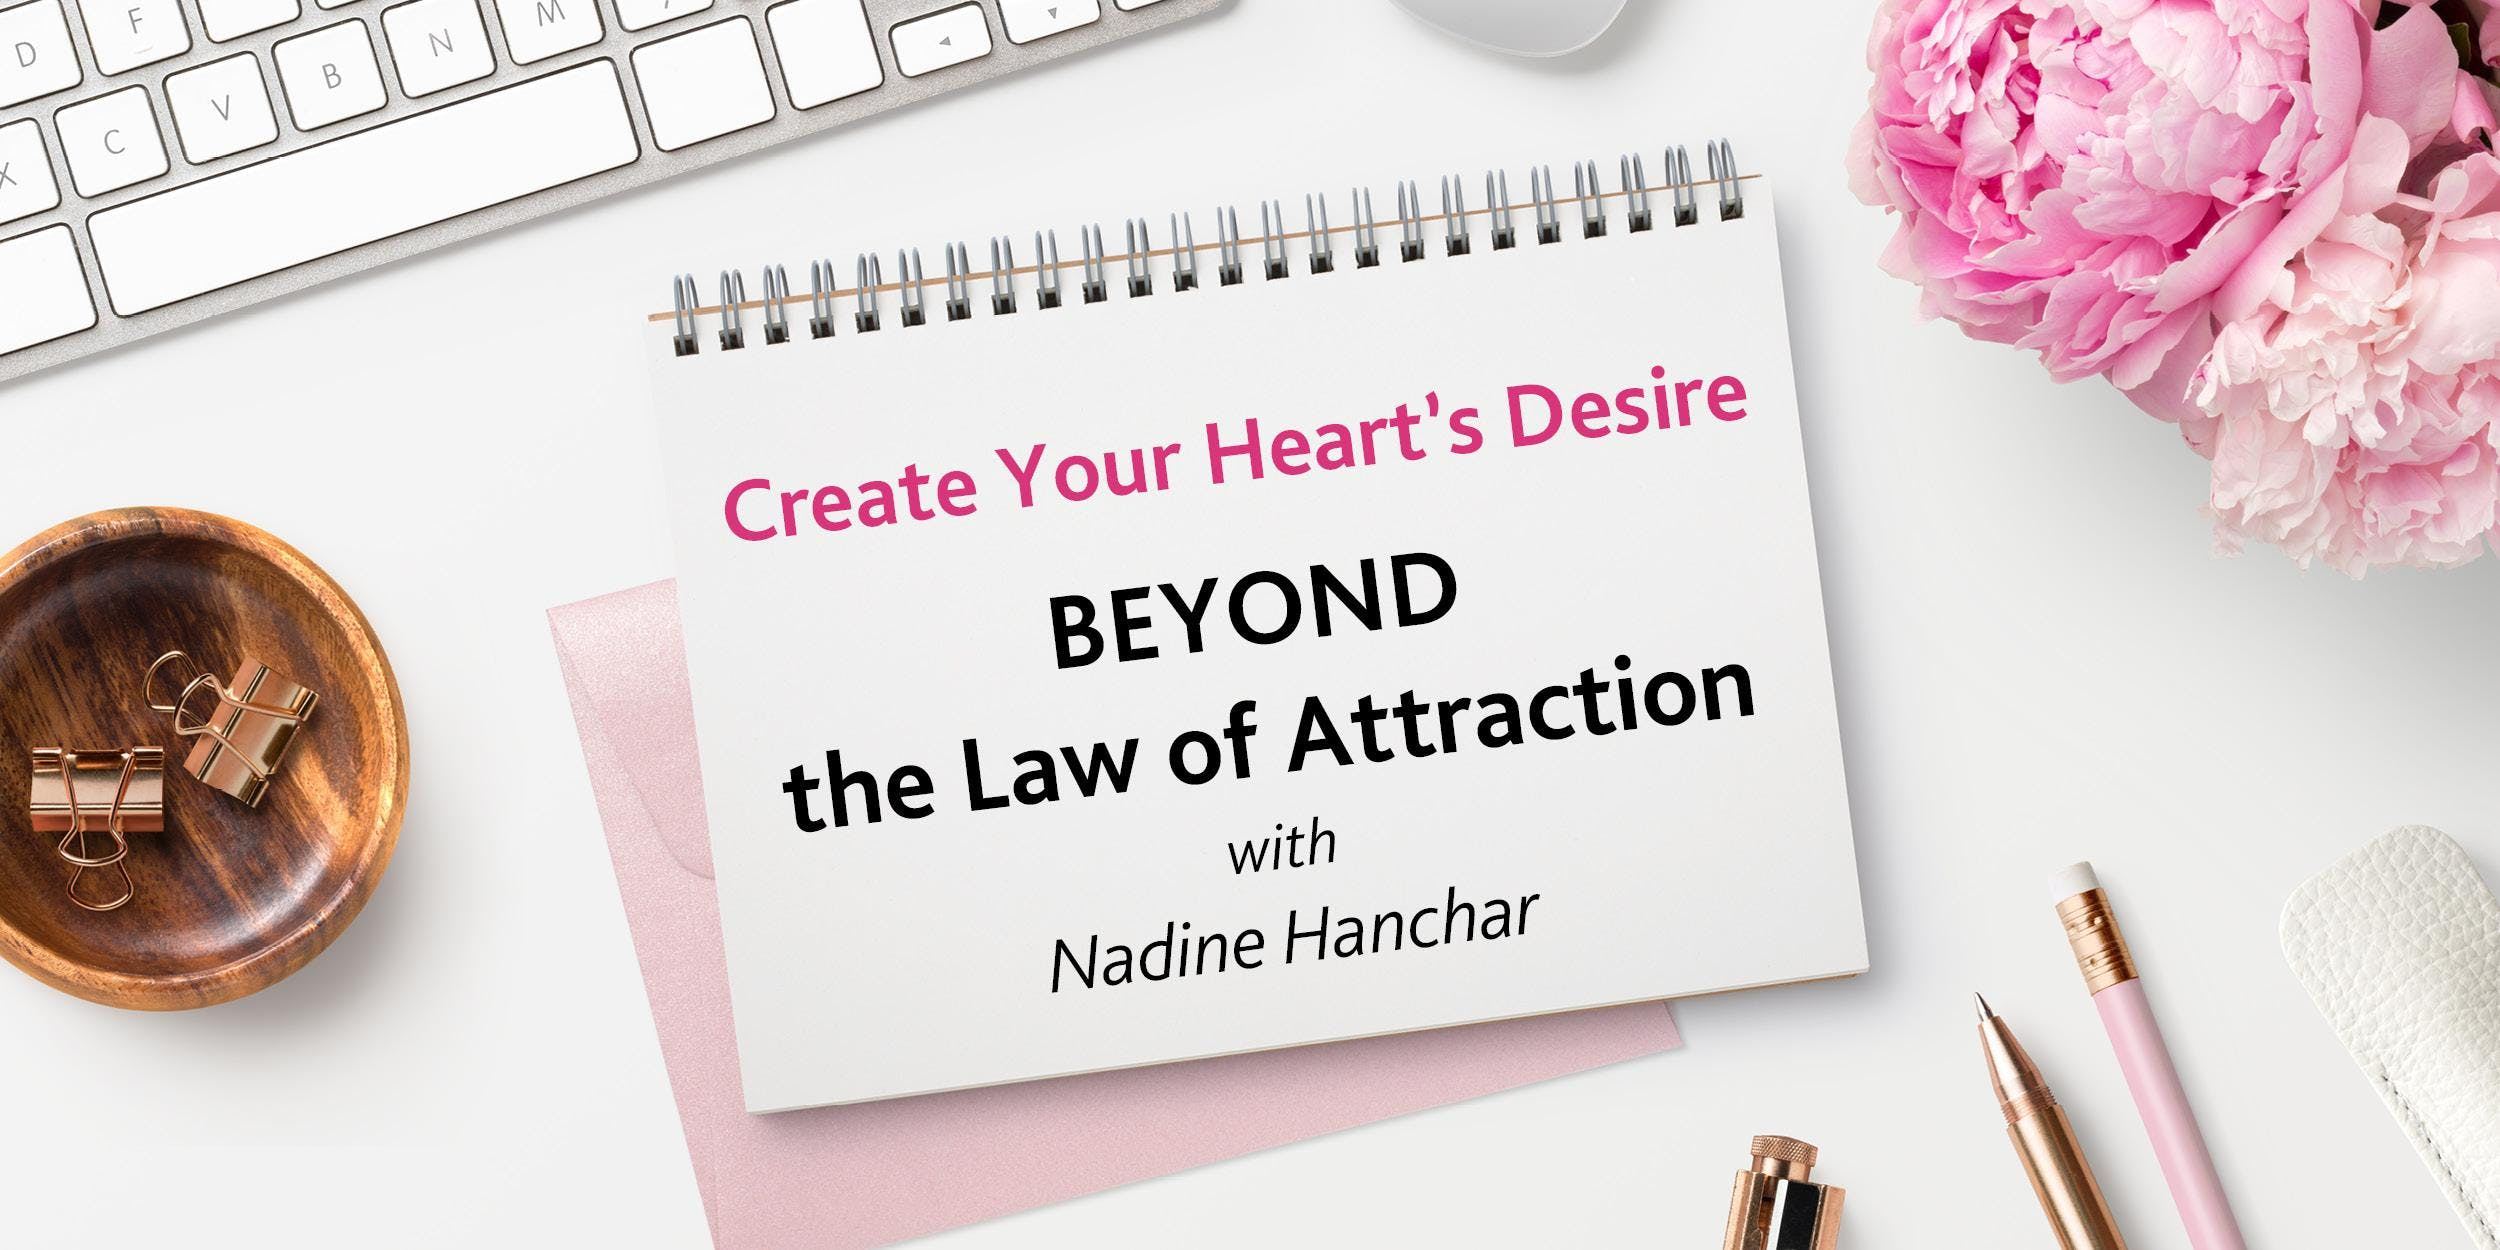 Beyond the Law of Attraction.  Create Your He